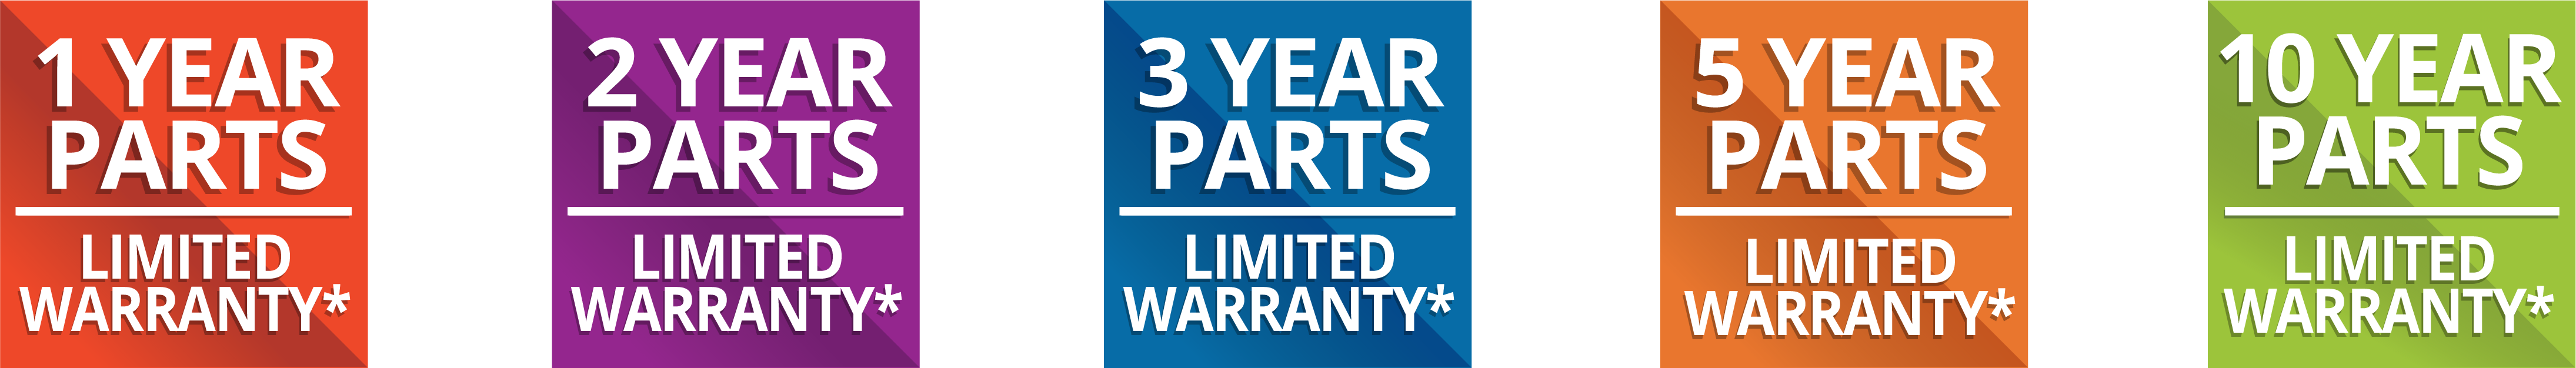 cc_warranty_badges_parts